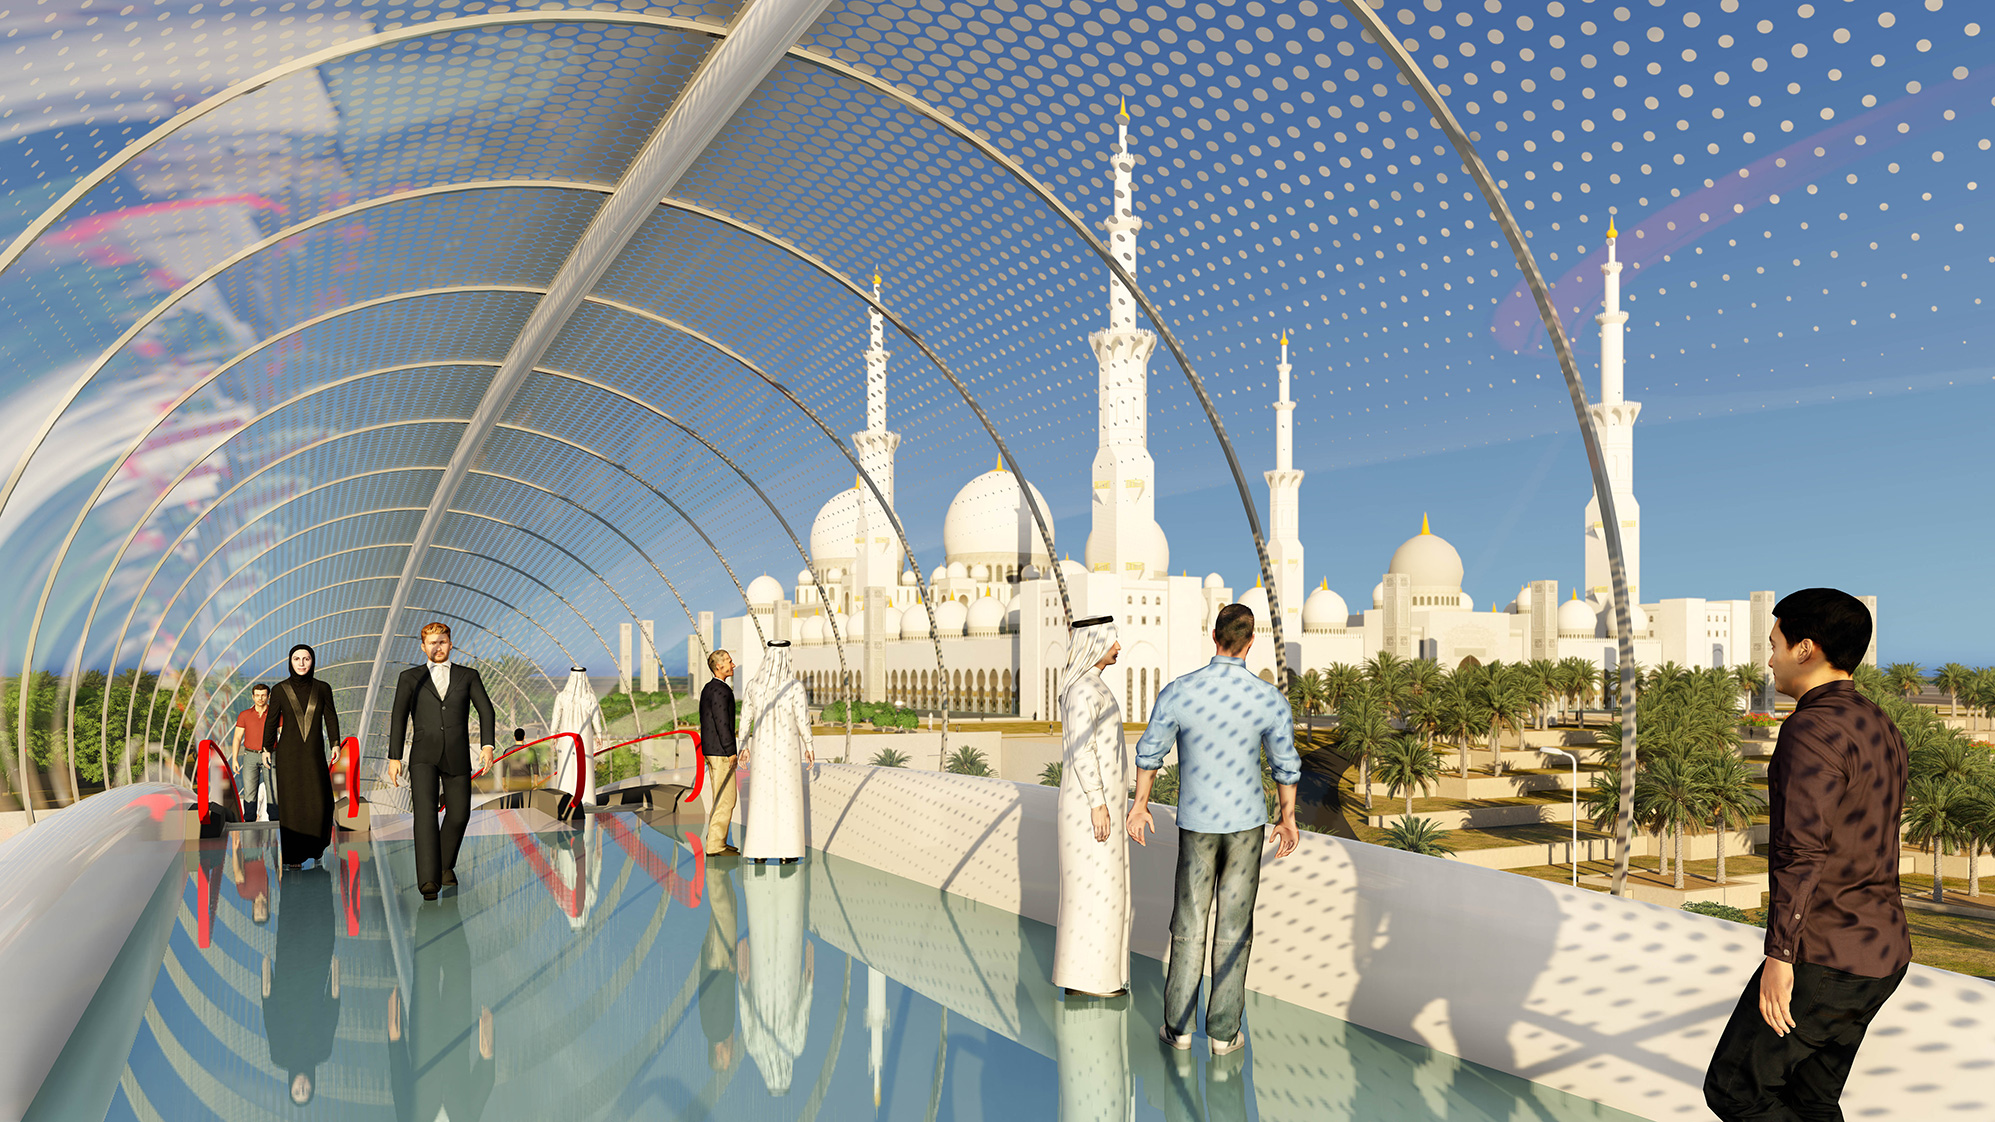 Voetgangersbrug Sheikh Zayed Grand Mosque